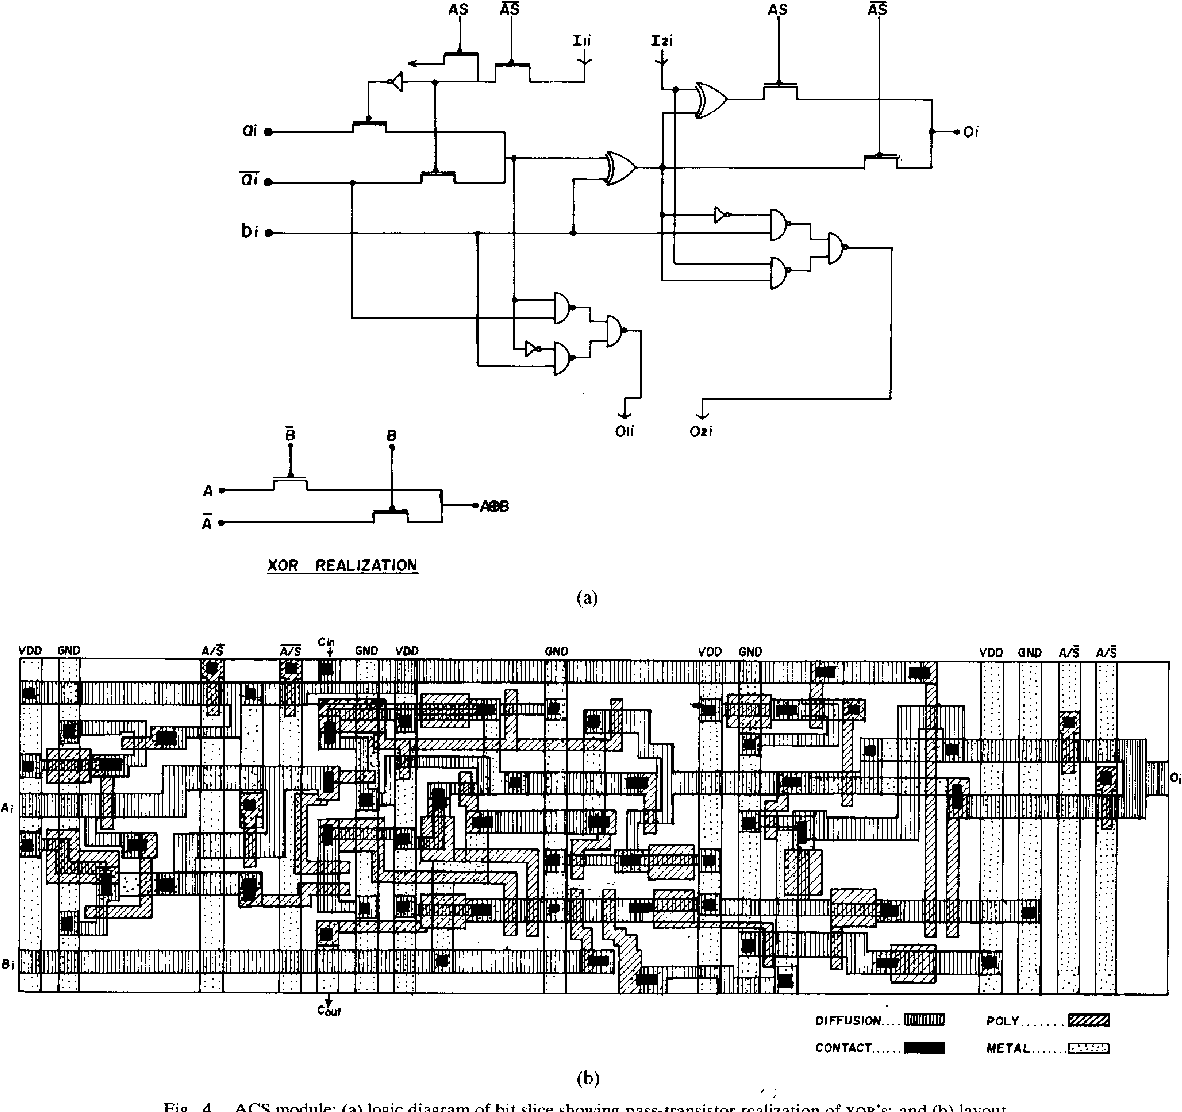 hight resolution of acs module a logic diagram of bit slice showing